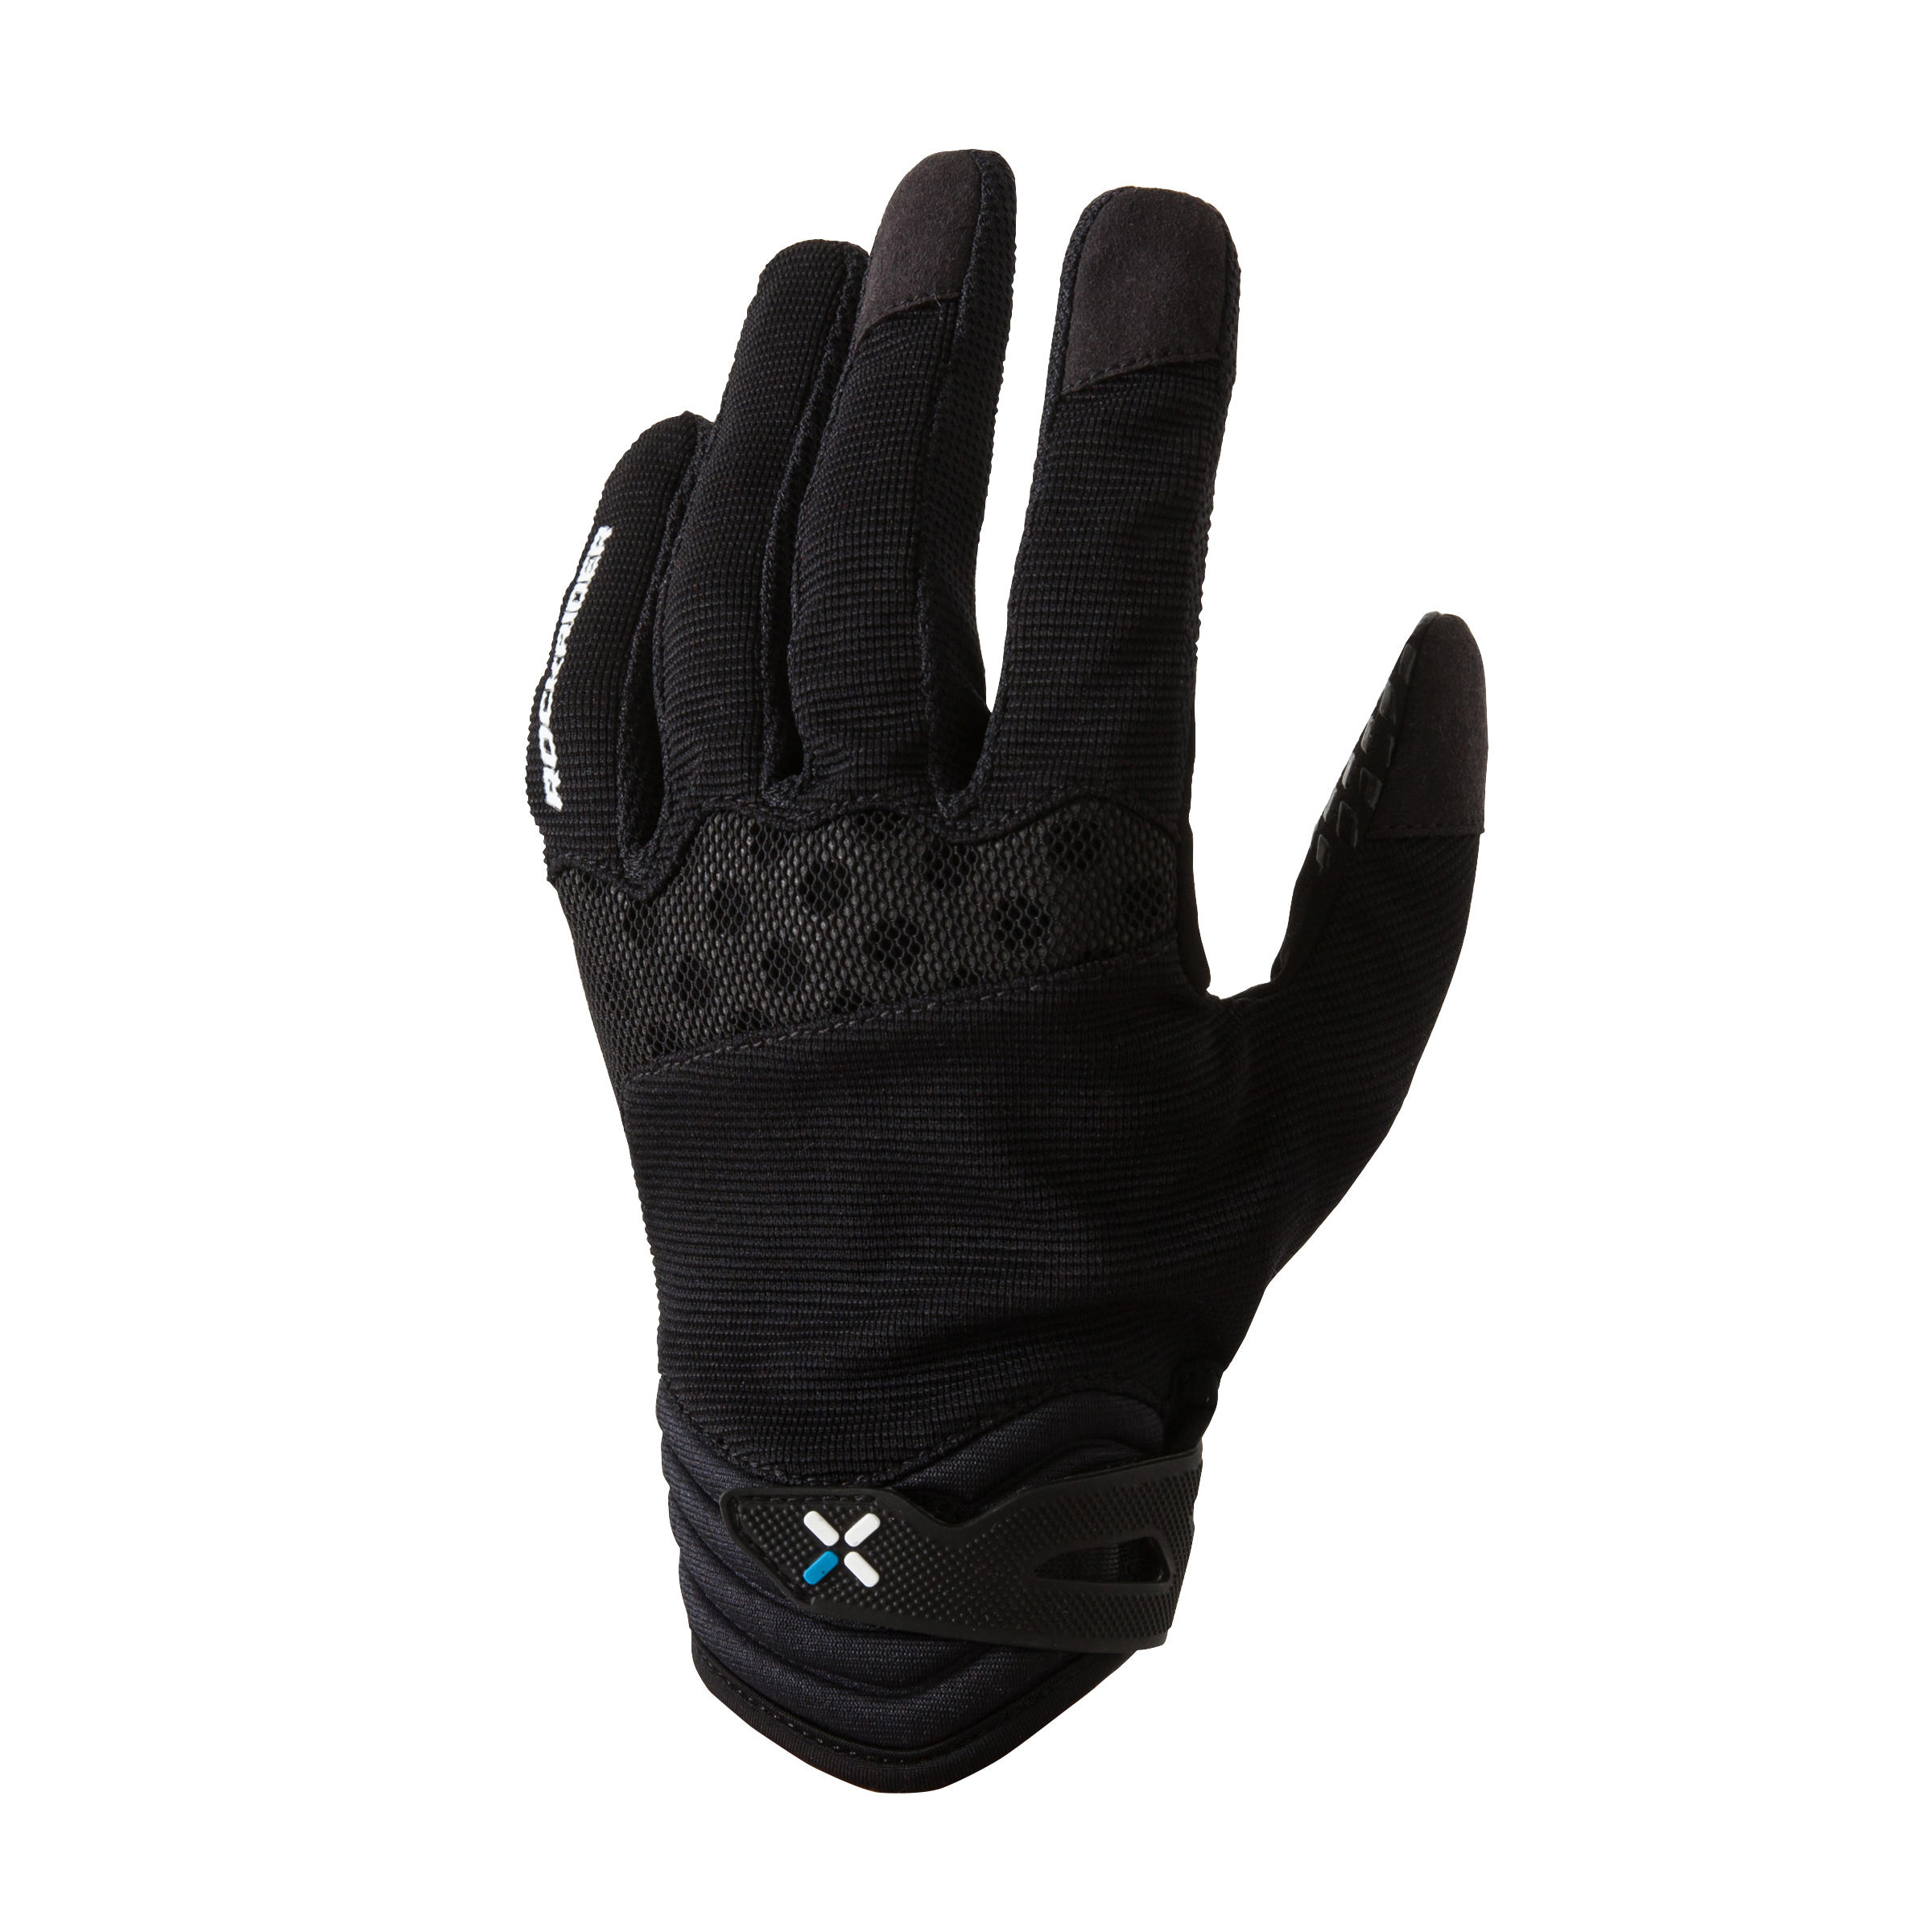 500 Mountain Bike Gloves - Black